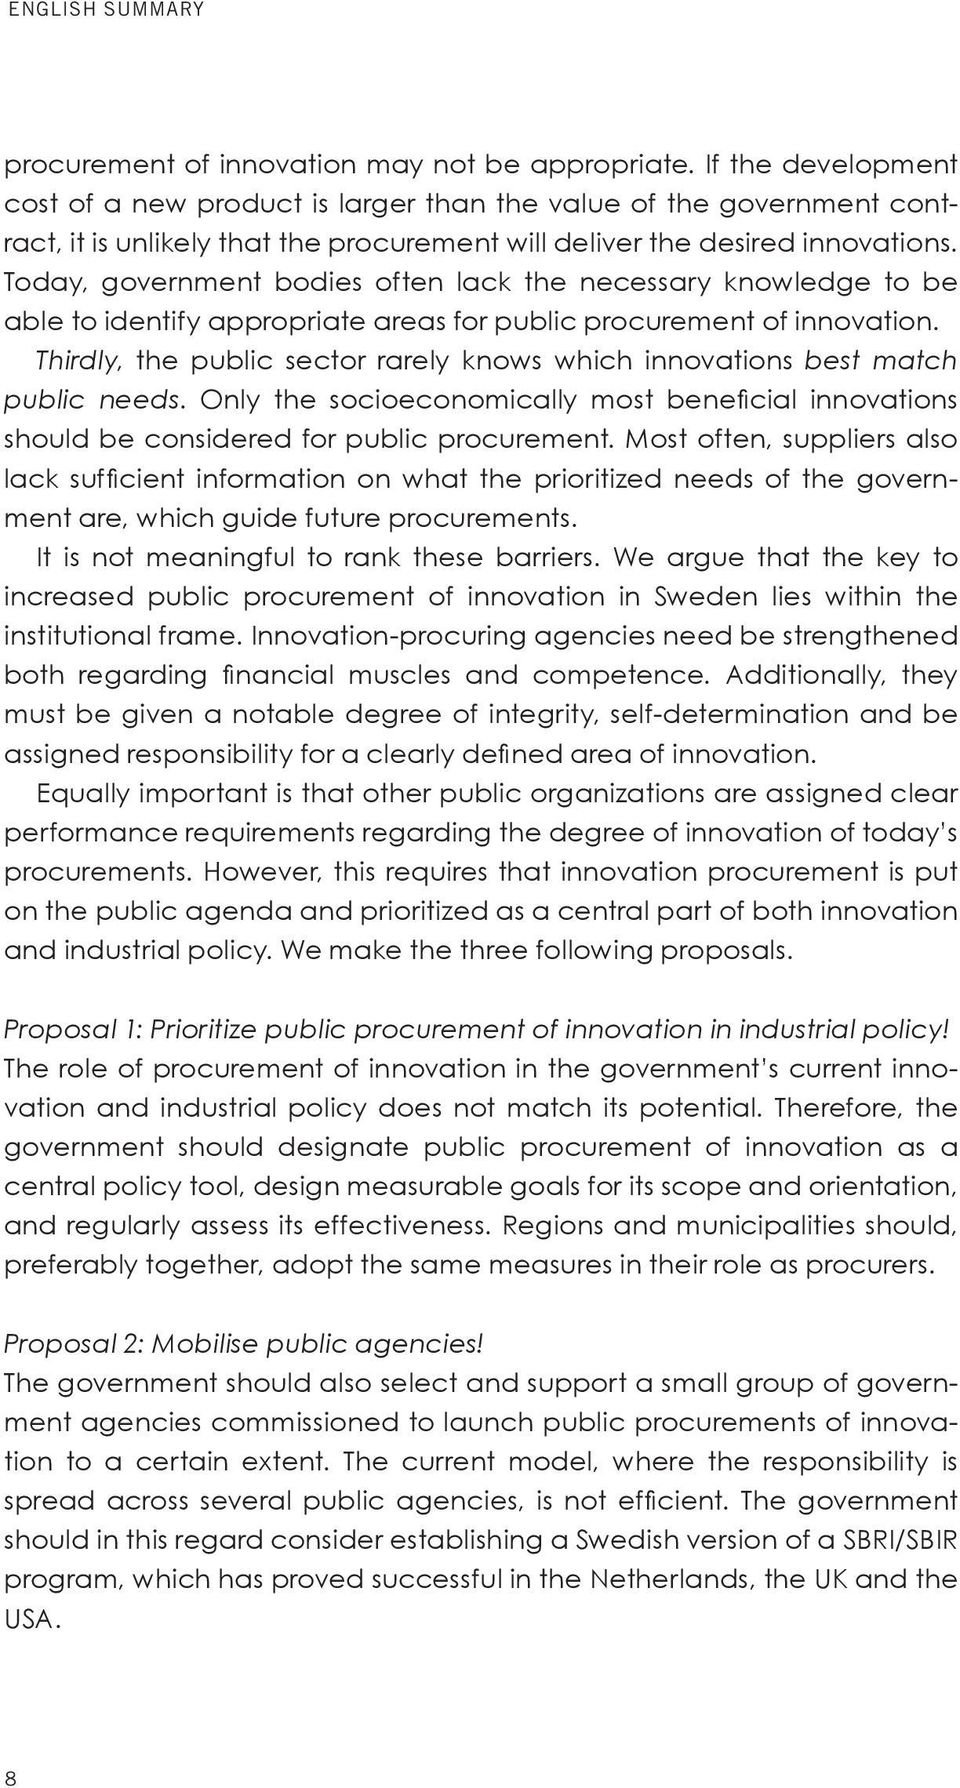 Today, government bodies often lack the necessary knowledge to be able to identify appropriate areas for public procurement of innovation.